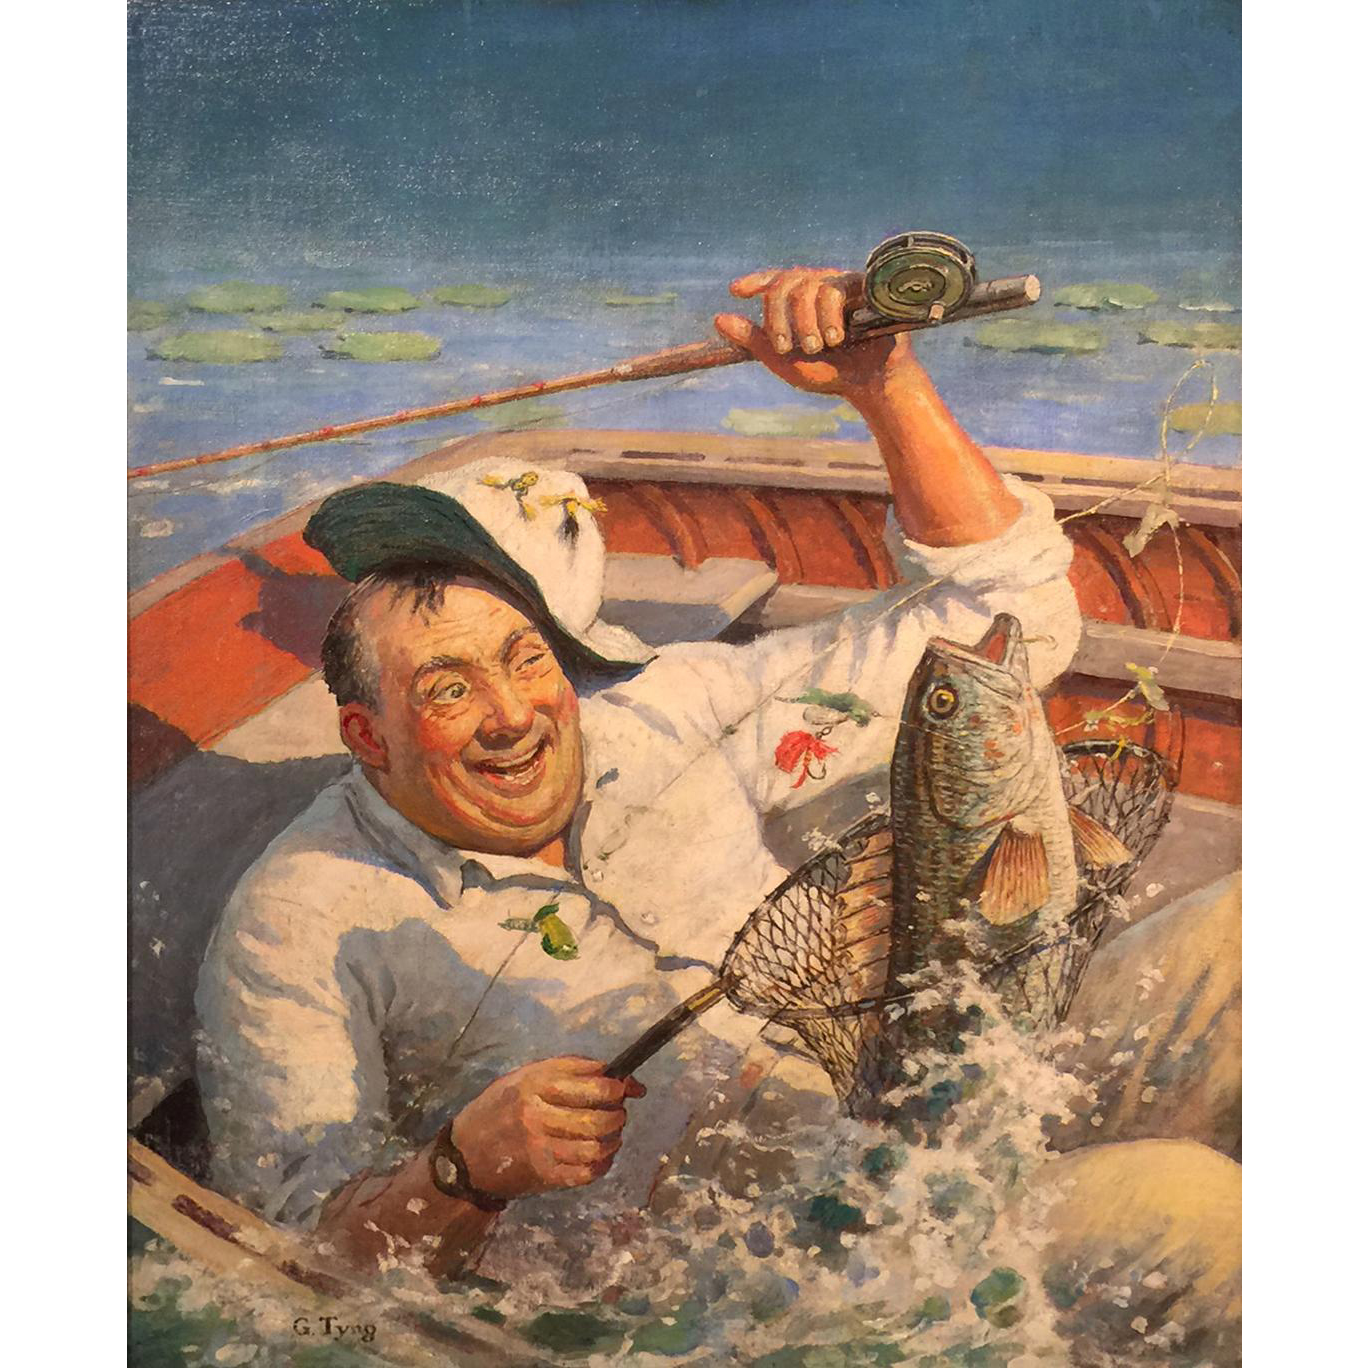 Griswold Tyng Original Oil Painting of a Fisherman - Cover of Hunting & Fishing Magazine 1938